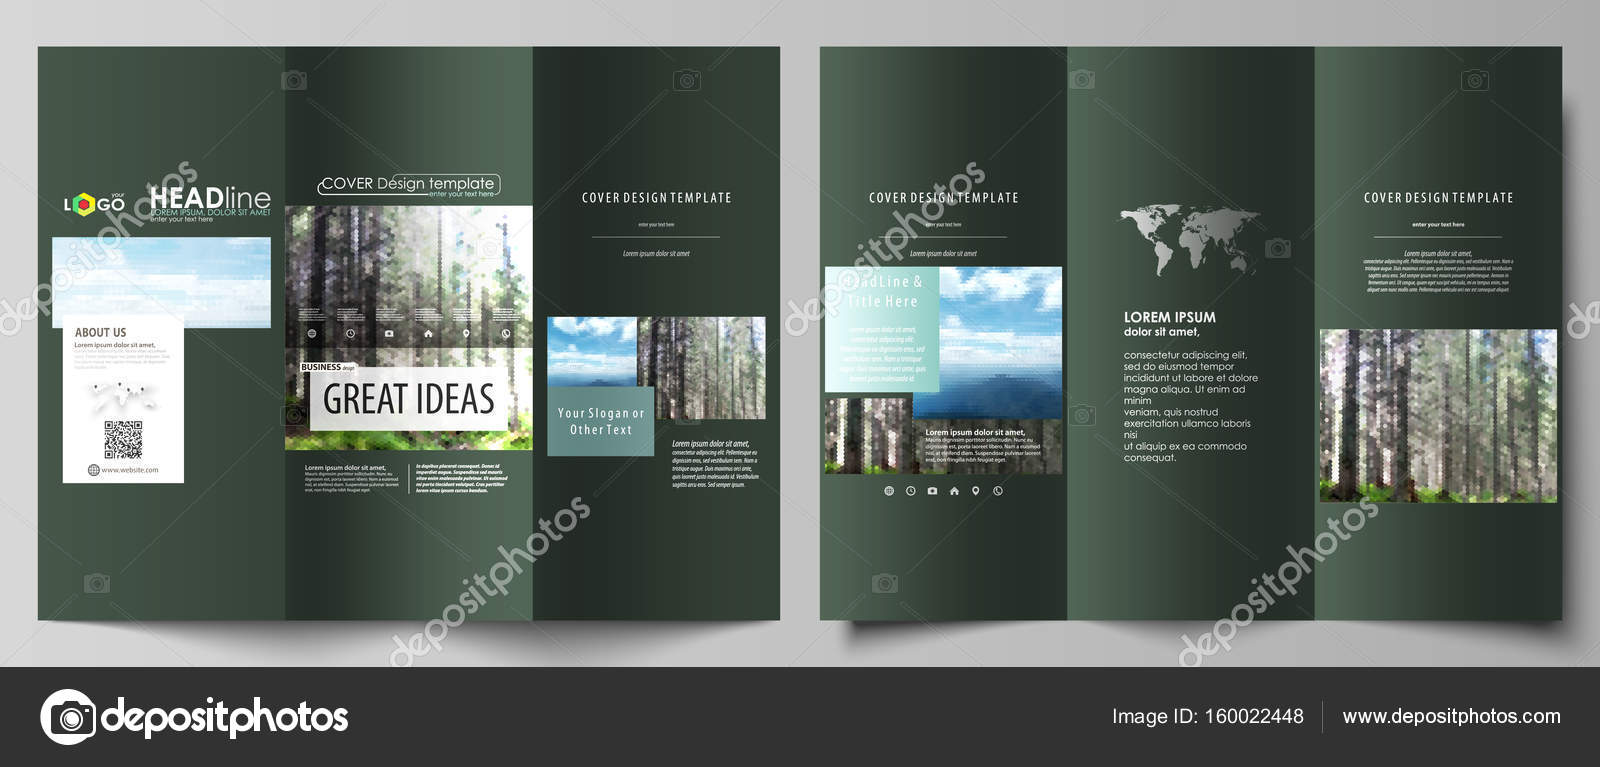 Tri-fold brochure templates on both sides Abstract vector layout in